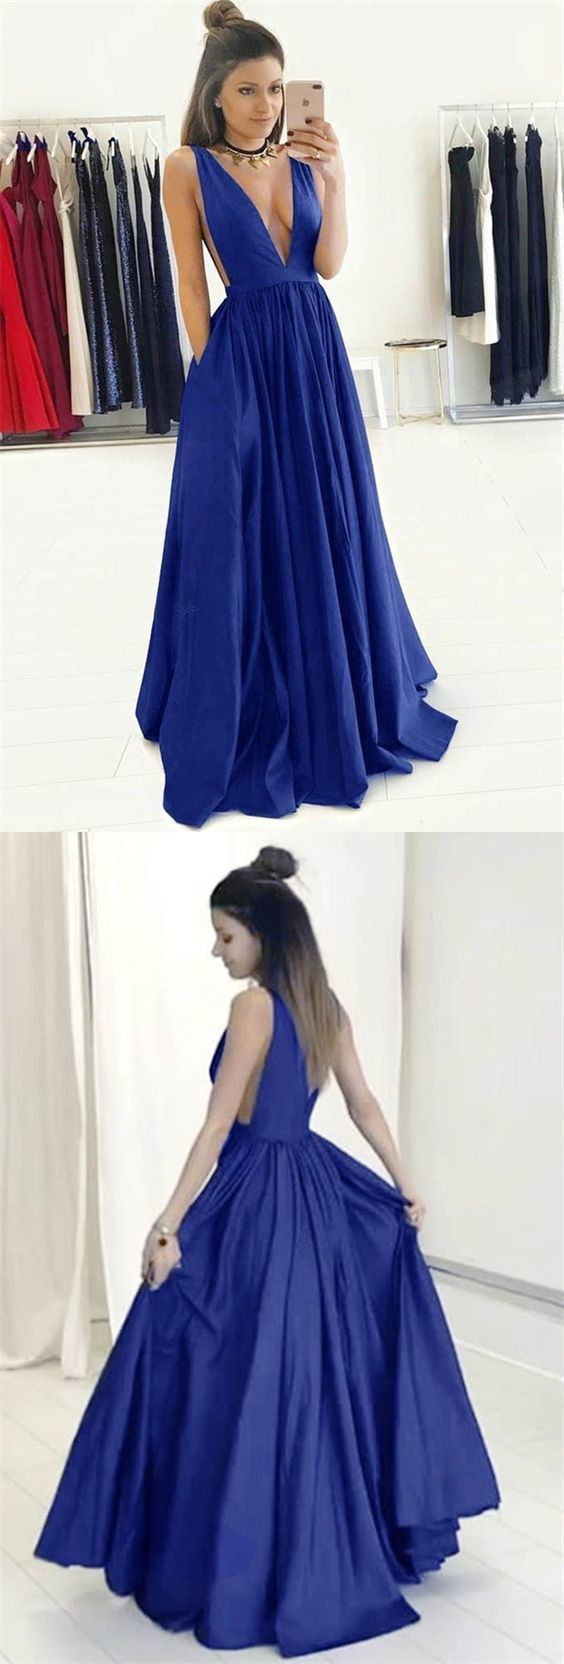 4201ca99ec7 Cheap Royal Blue Formal Gowns